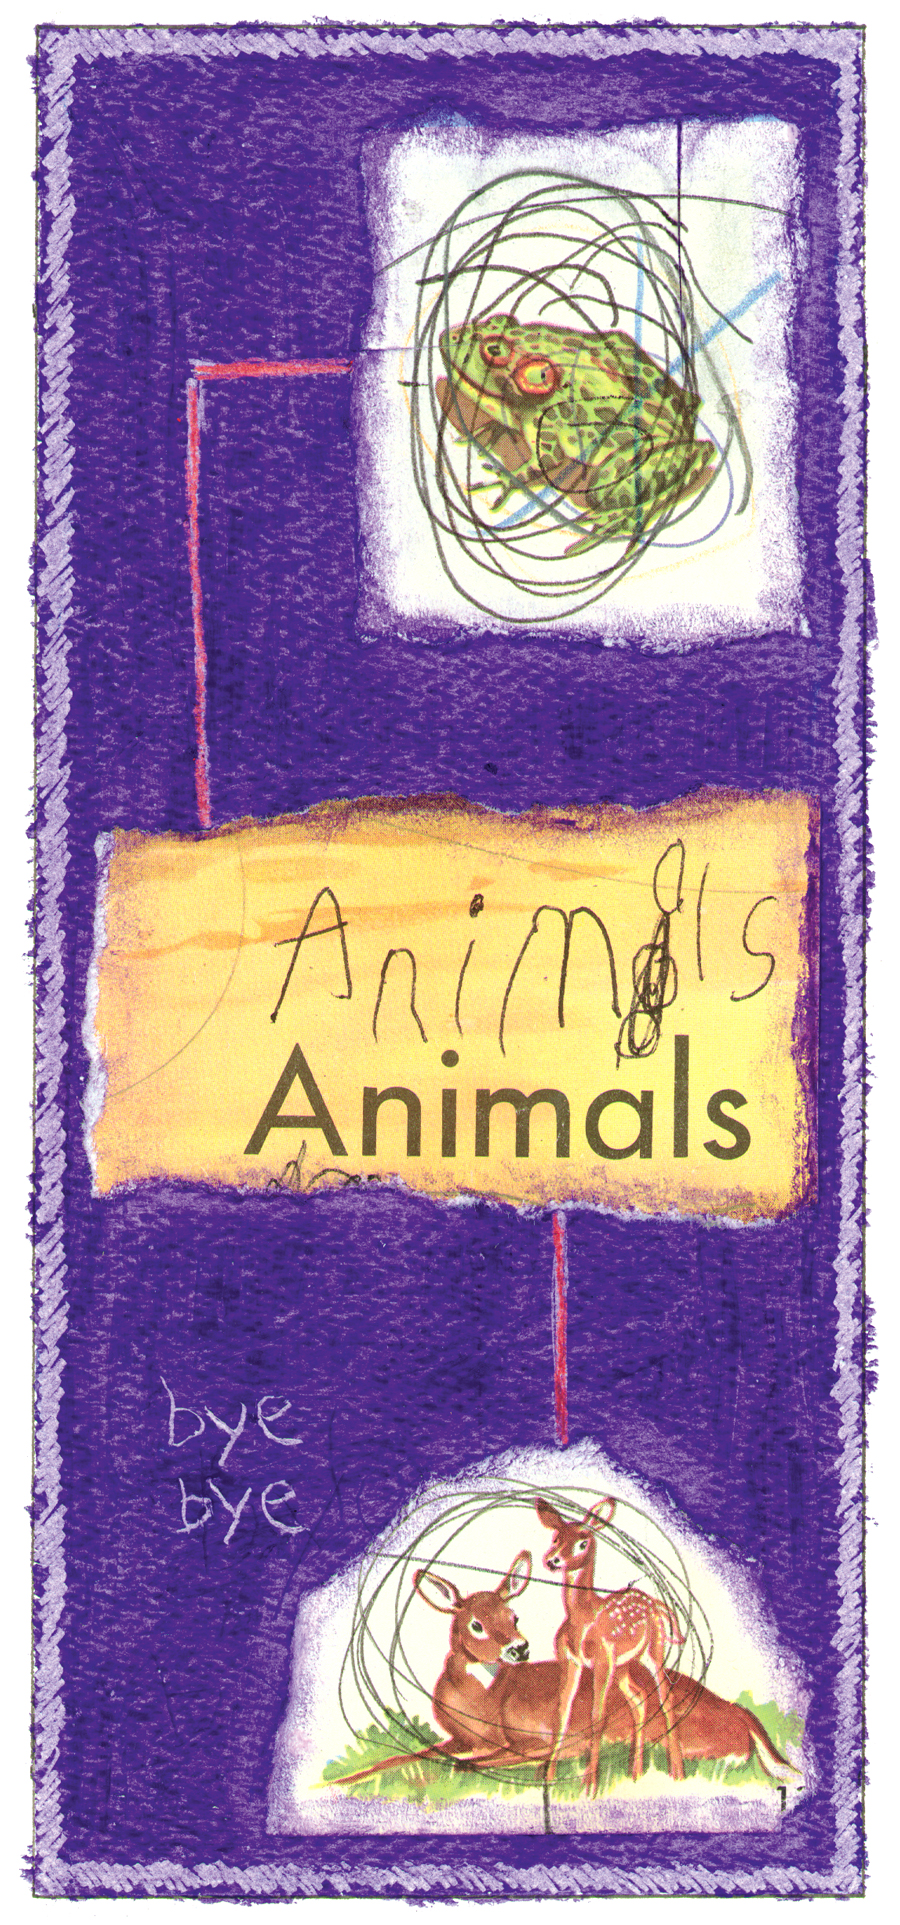 Animals, by Randall Heath